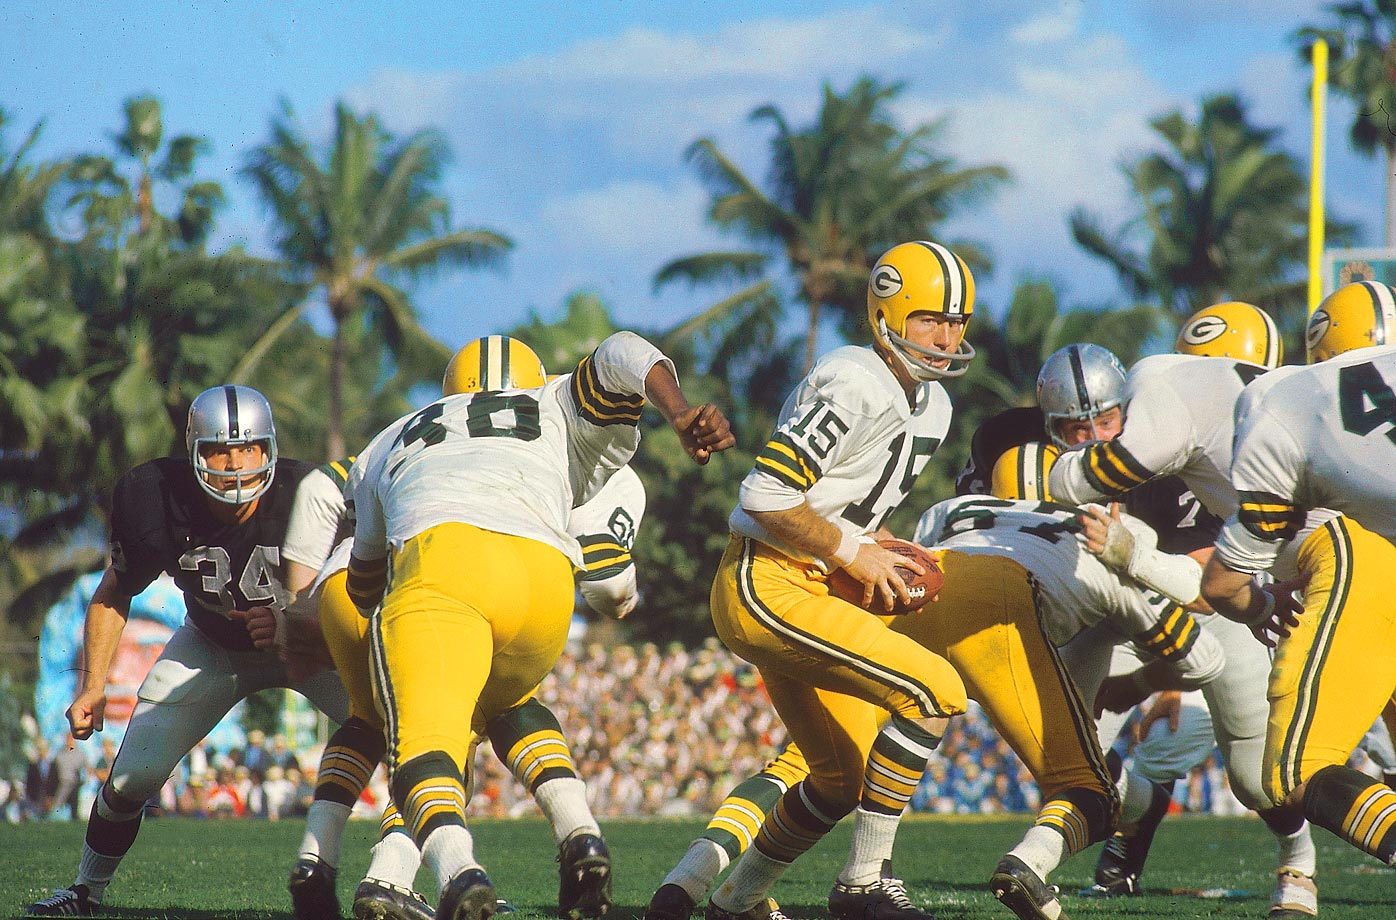 Two weeks after defeating the Dallas Cowboys in the waning seconds of the Ice Bowl, Bart Starr and the Packers got past Oakland with ease in Super Bowl II, 33-14. Starr was again the MVP.